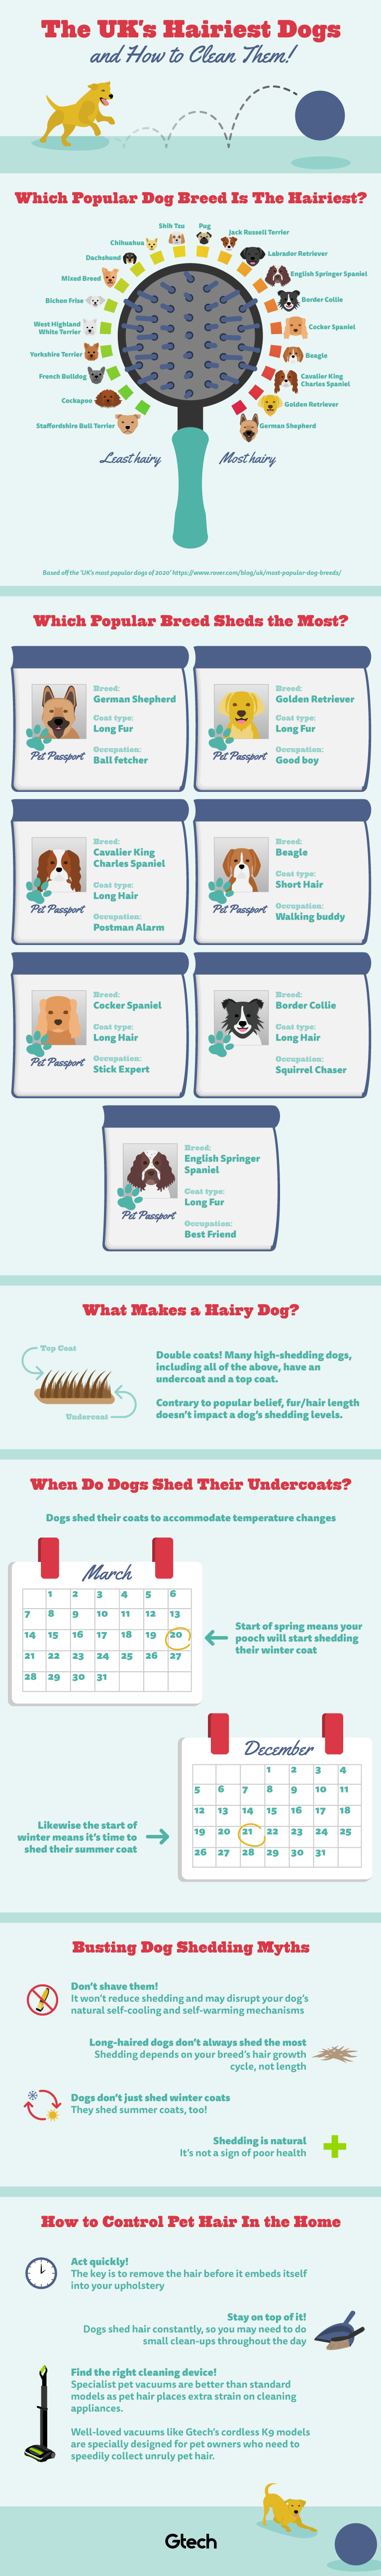 The UK's hairiest dogs and how to clean them